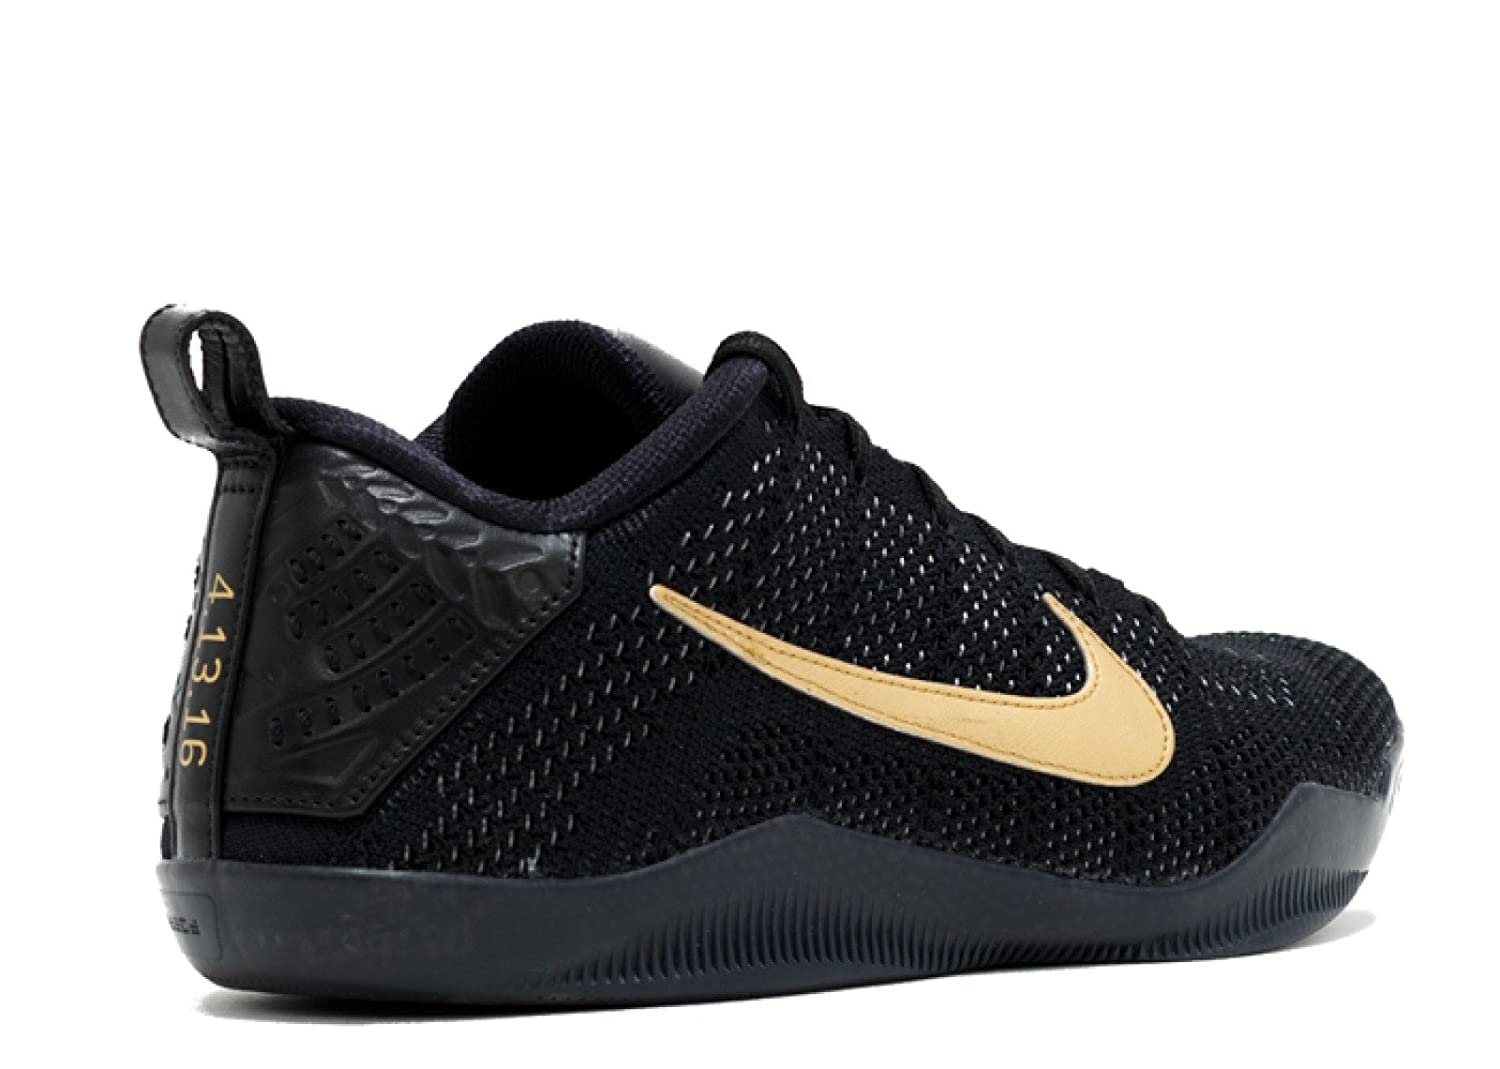 770ac1067950 ... wholesale amazon nike kobe 11 ftb black black metallic gold 869459 001  fade to black black